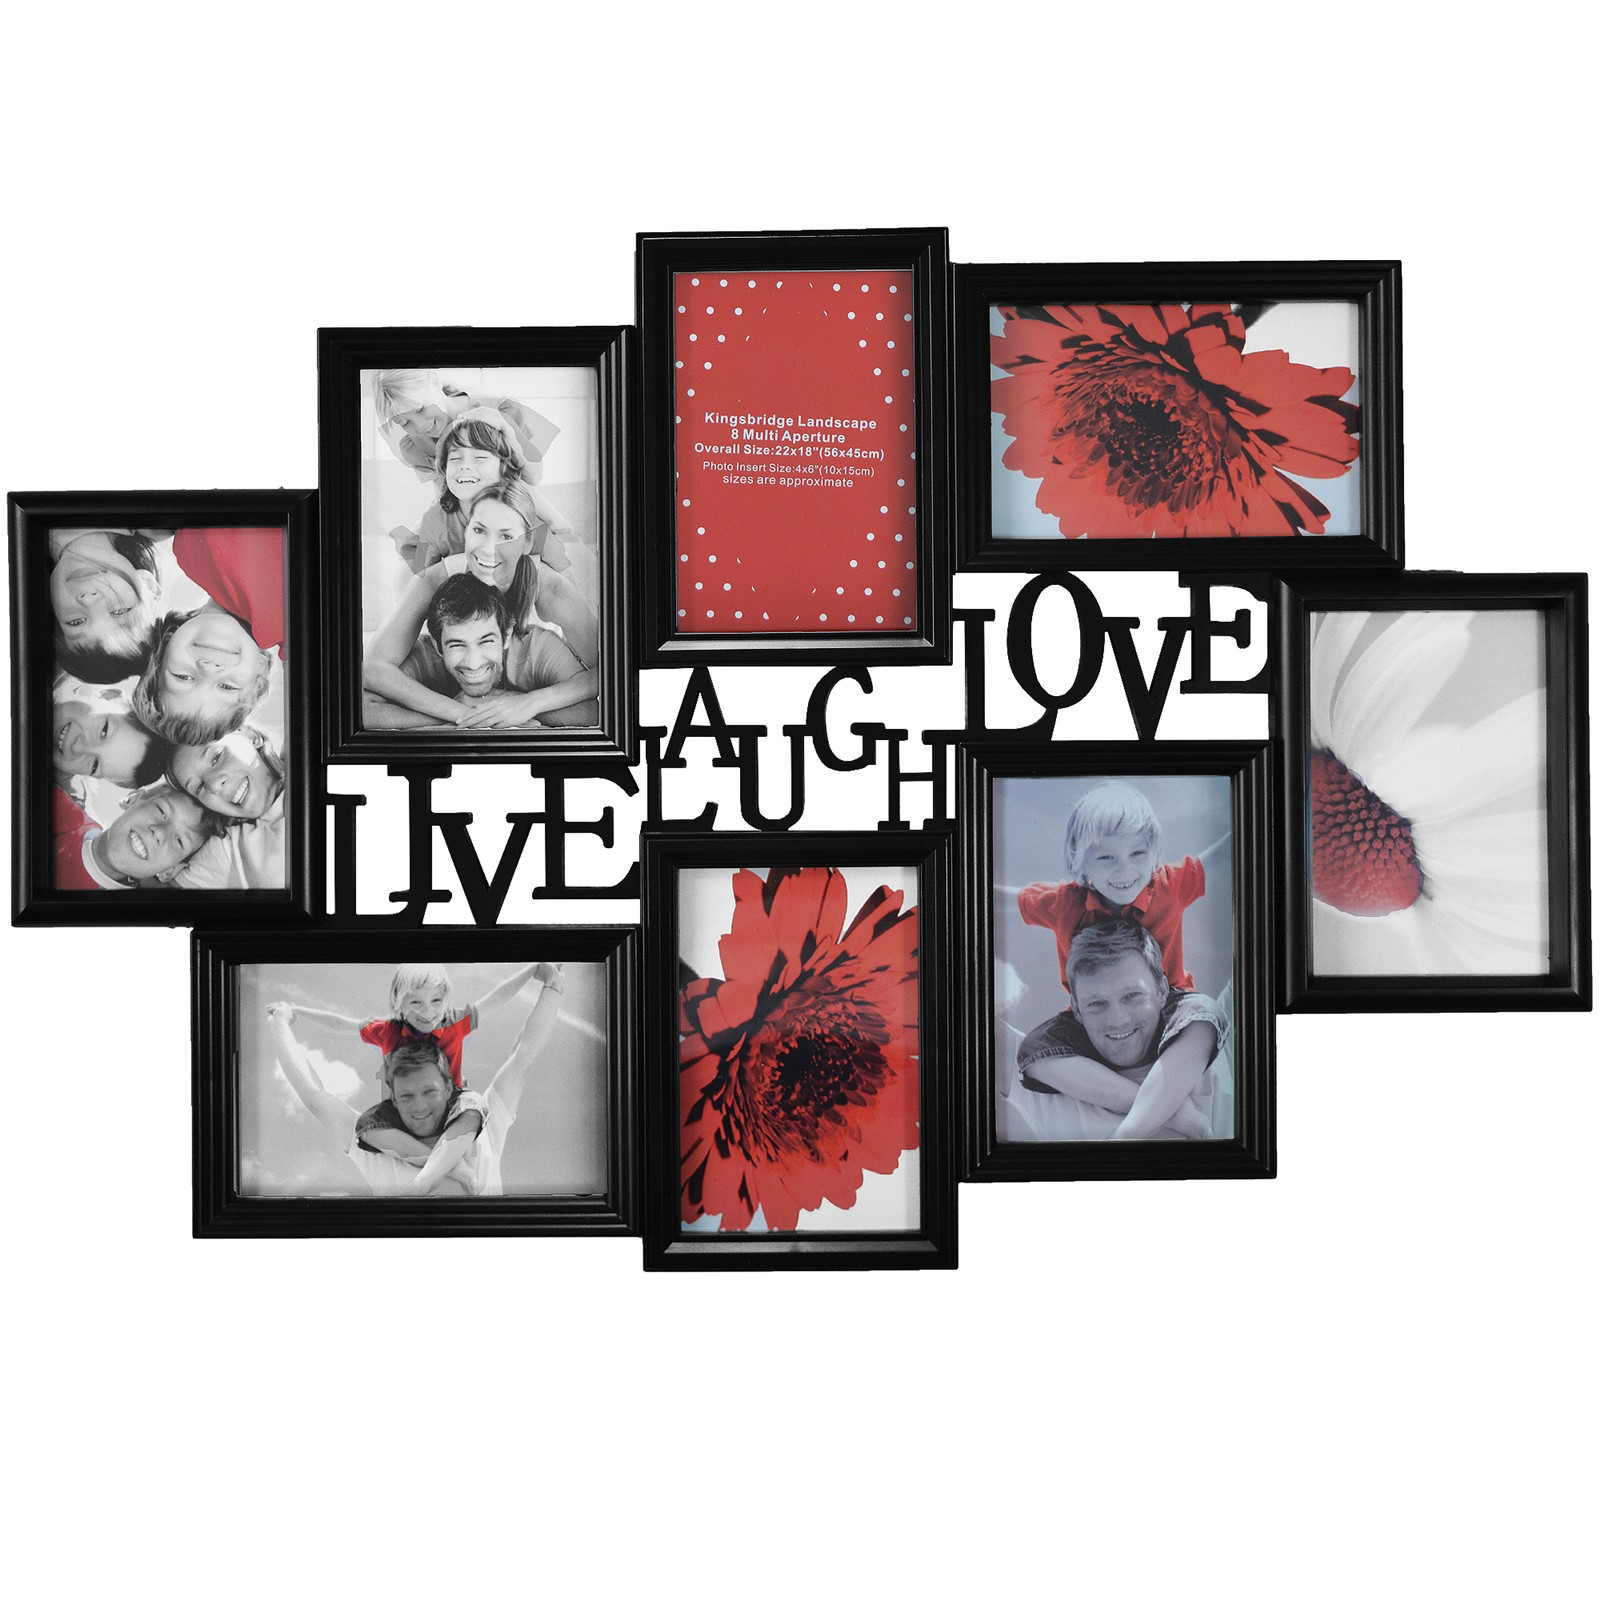 multi photoframe family love frames collage picture aperture wall photo frame ebay. Black Bedroom Furniture Sets. Home Design Ideas